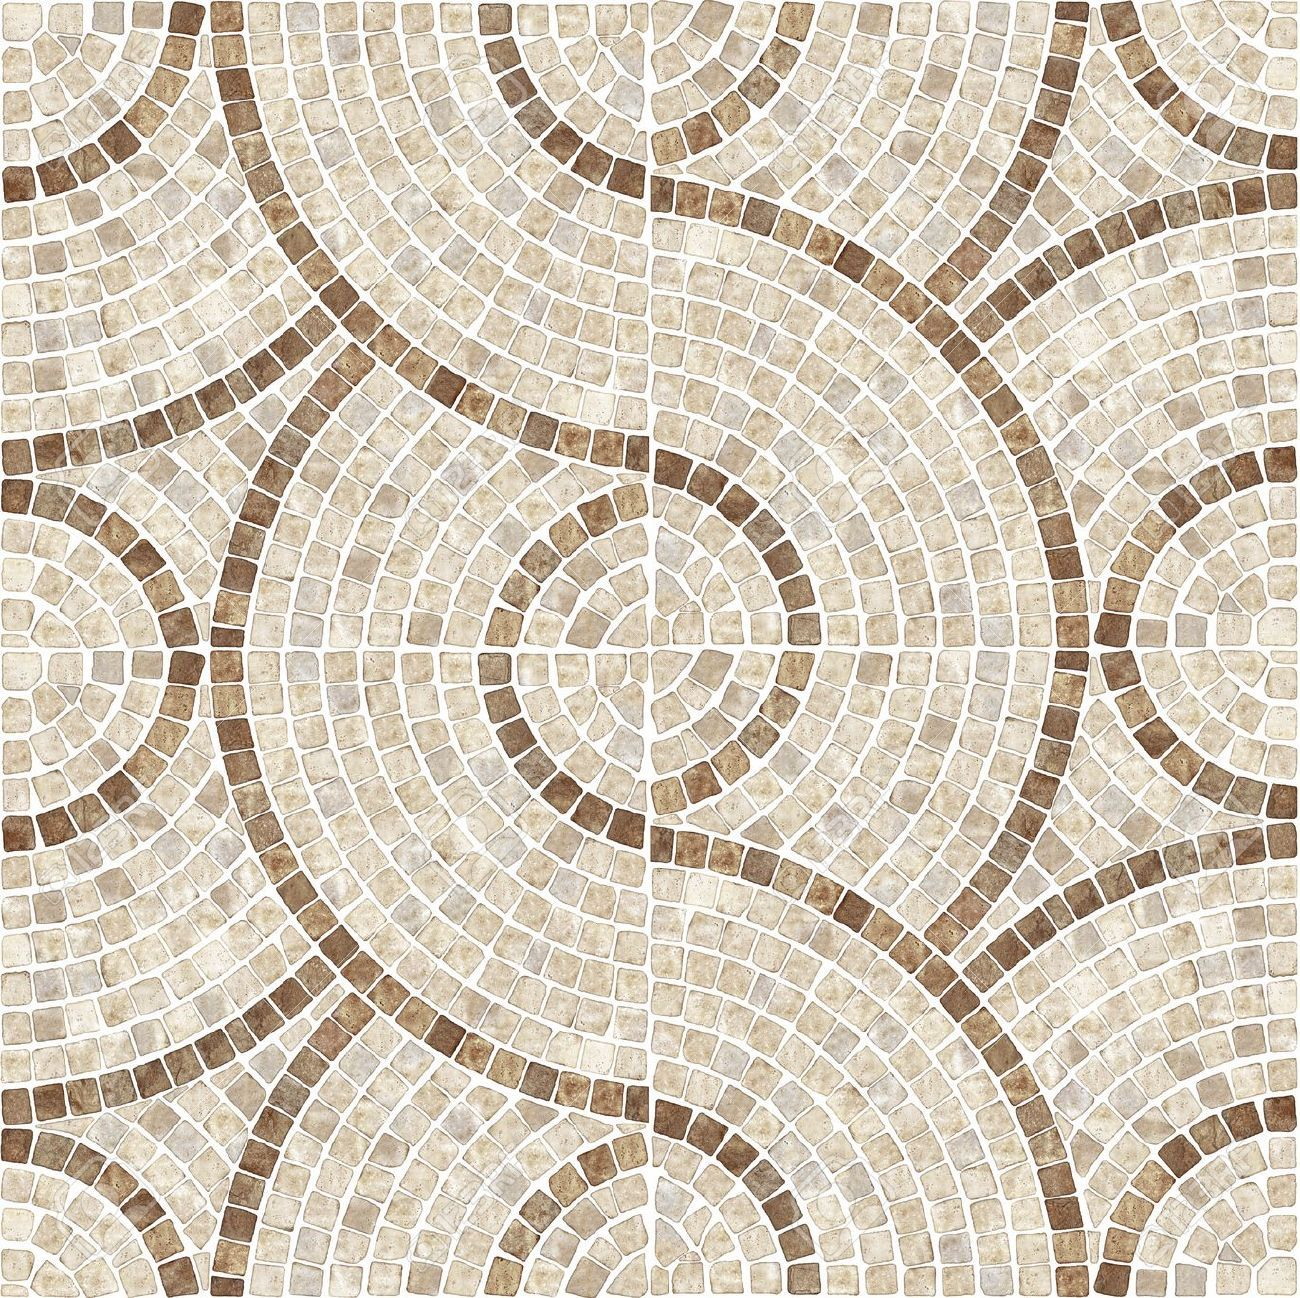 Marble Tile Floor Texture brown marble-stone mosaic texture high res stock photo, picture